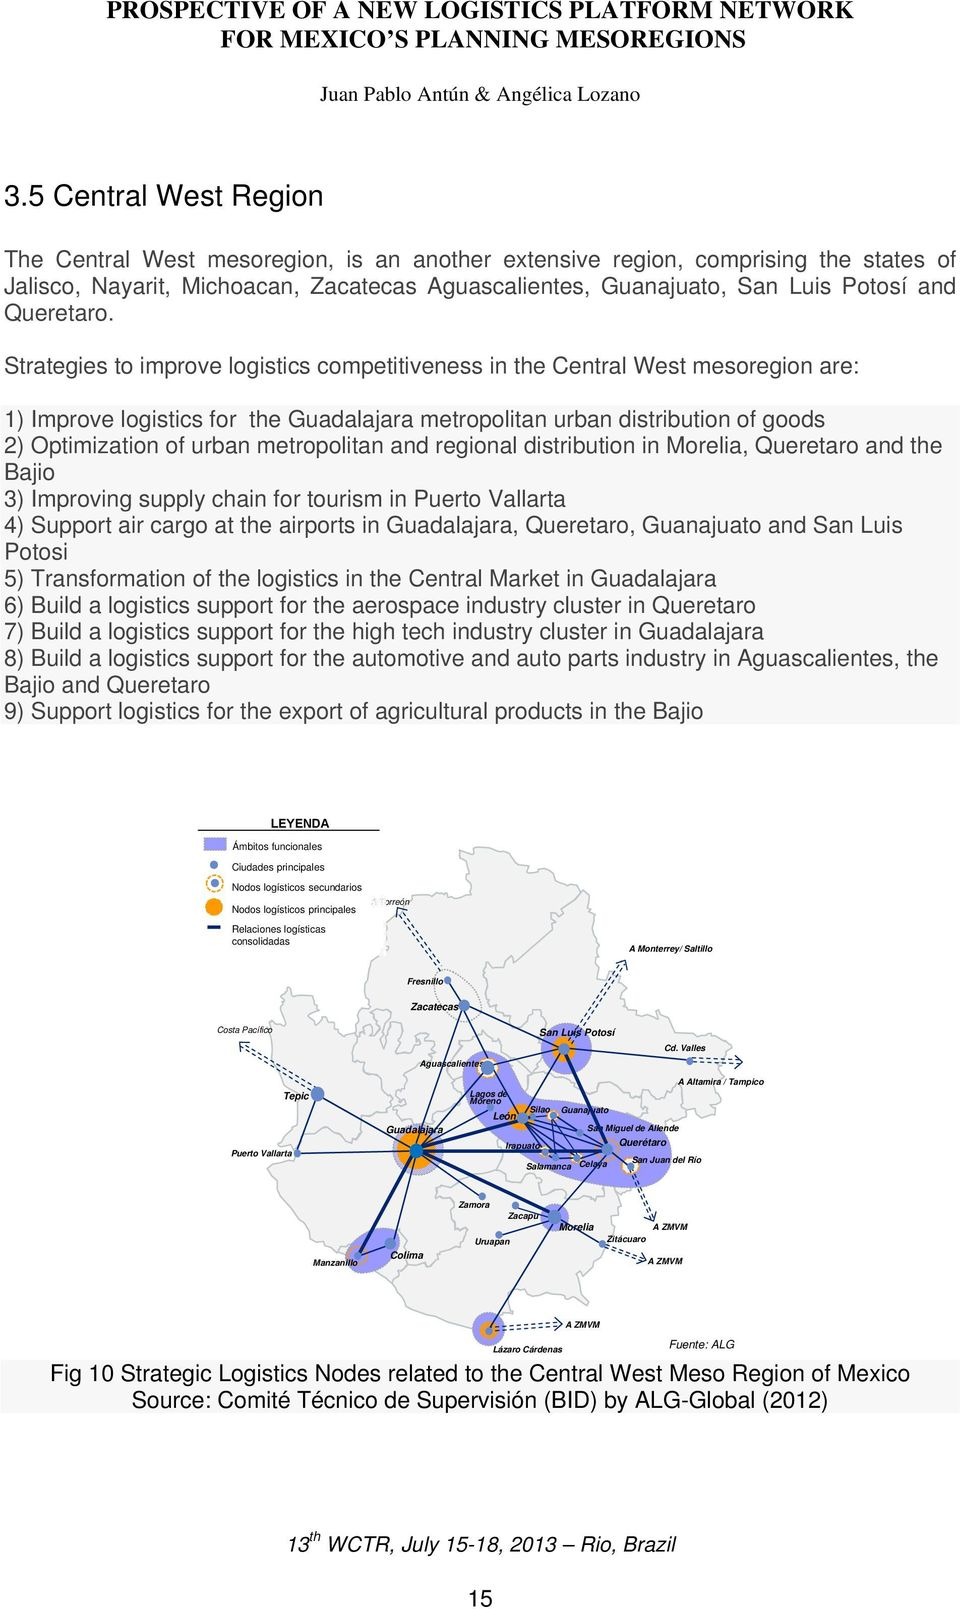 Strategies to improve logistics competitiveness in the Central West mesoregion are: 1) Improve logistics for the Guadalajara metropolitan urban distribution of goods 2) Optimization of urban